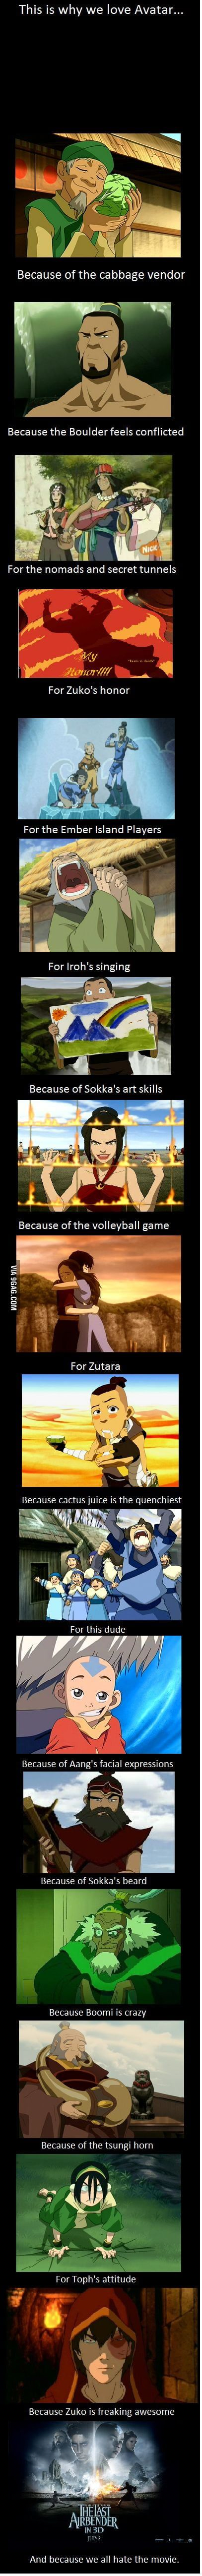 Avatar is the best - Funny